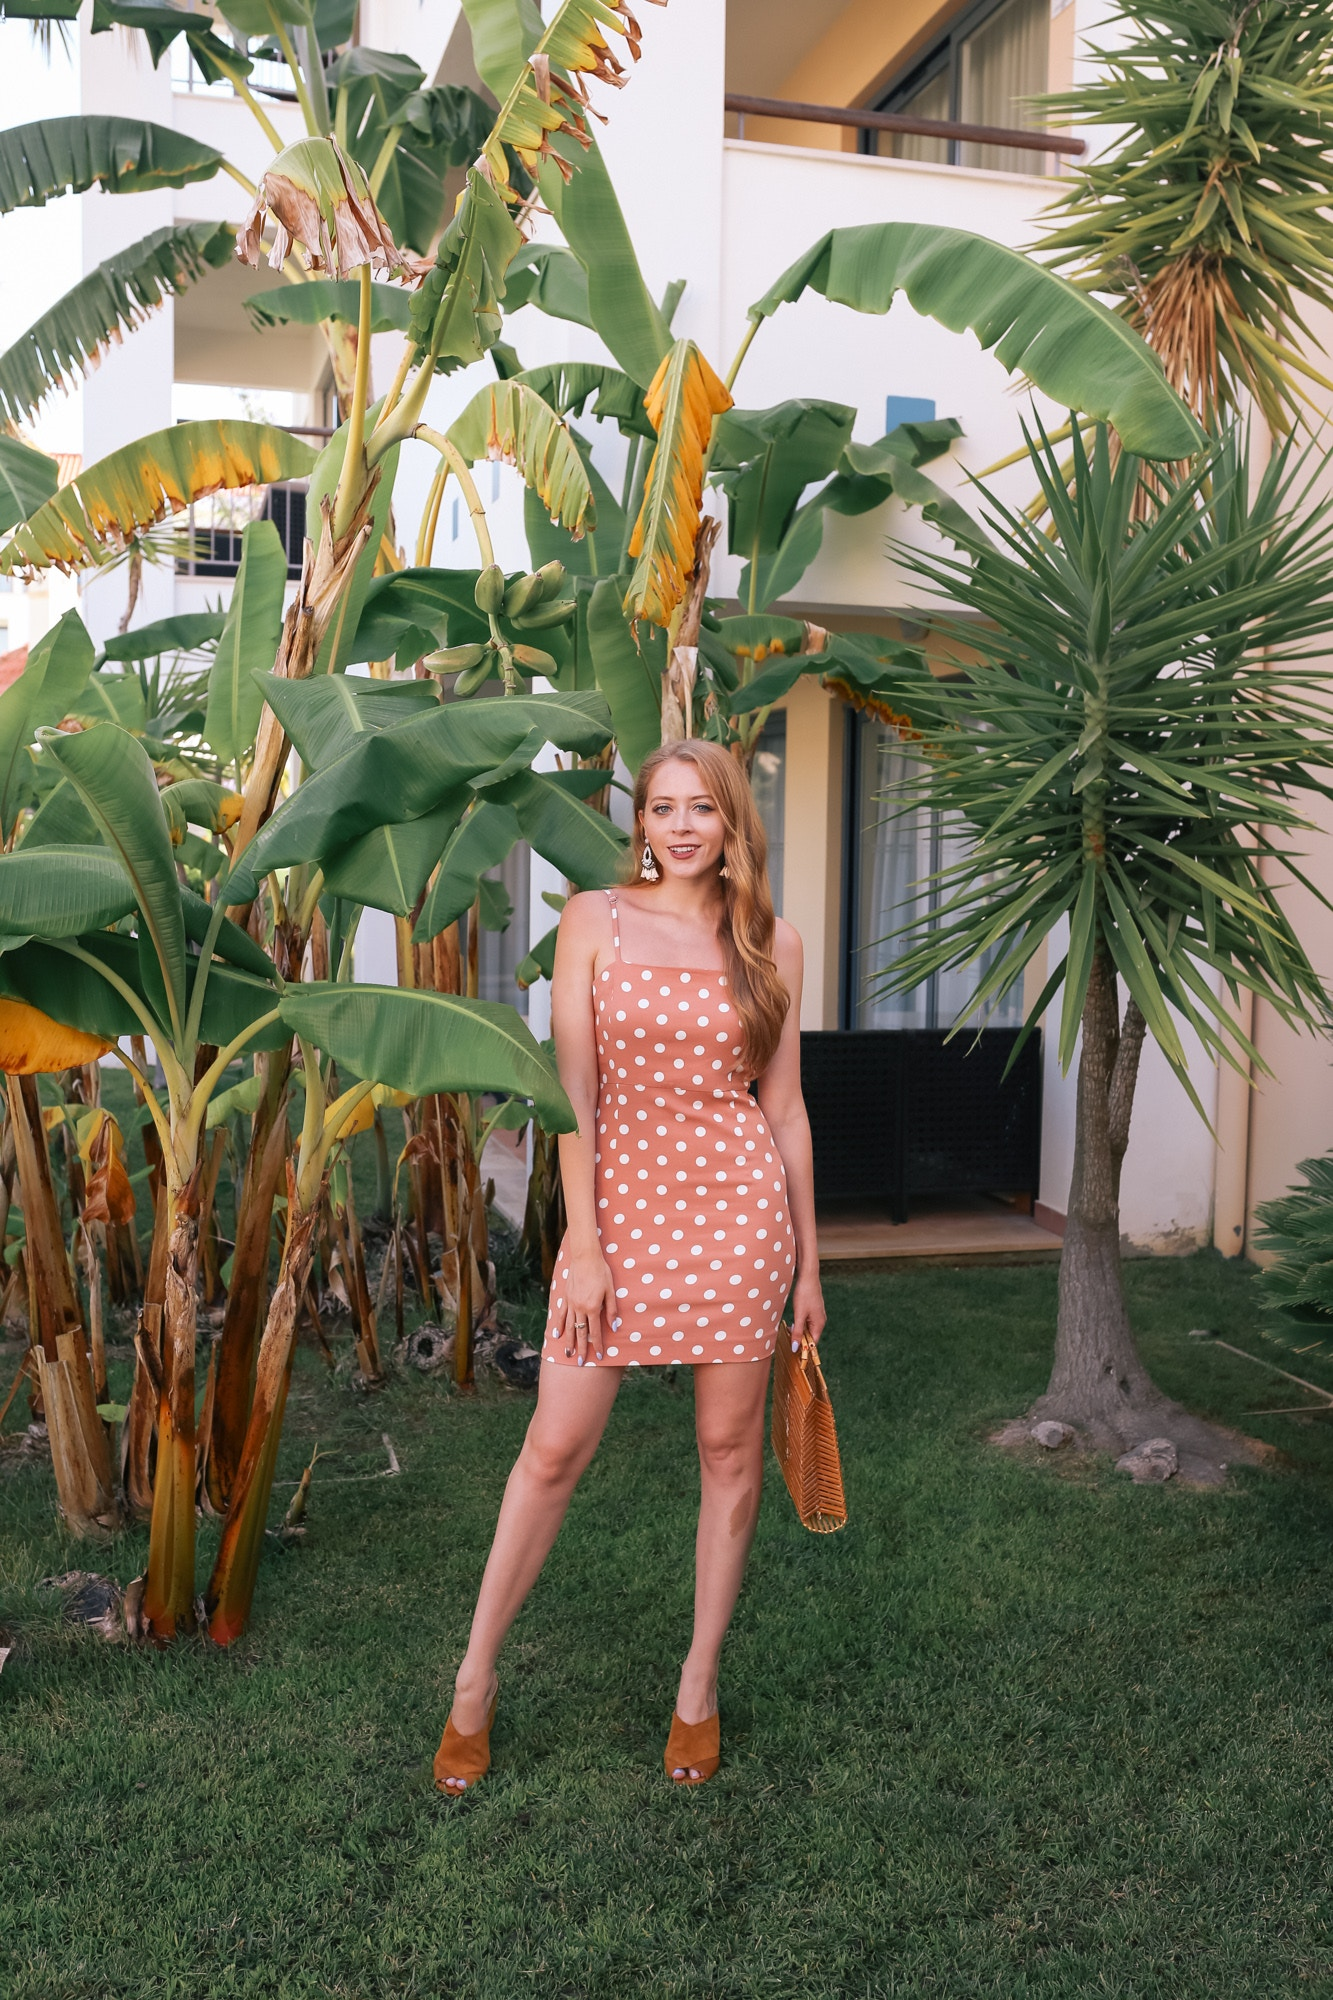 A chic polka dot spaghetti strap dress from Forever 21 is perfect for a tropical vacation. I wore this outfit to explore my hotel, Hilton Vilamoura As Cascatas Golf Resort & Spa during my recent trip to Portugal.